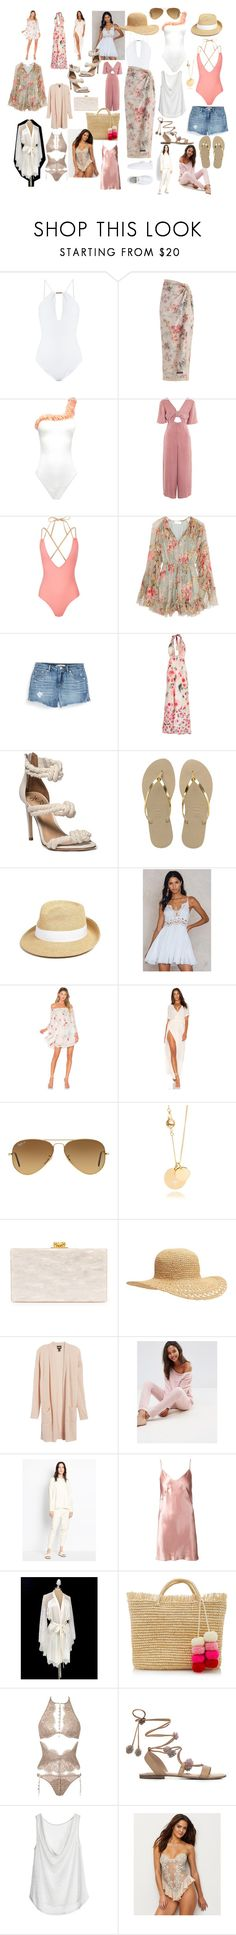 """Lux Beach Destination Honeymoon"" by jastyleyou on Polyvore featuring Melissa Odabash, Zimmermann, Topshop, Levi's, VDP, Havaianas, Eric Javits, Free People, The Jetset Diaries and Ray-Ban"